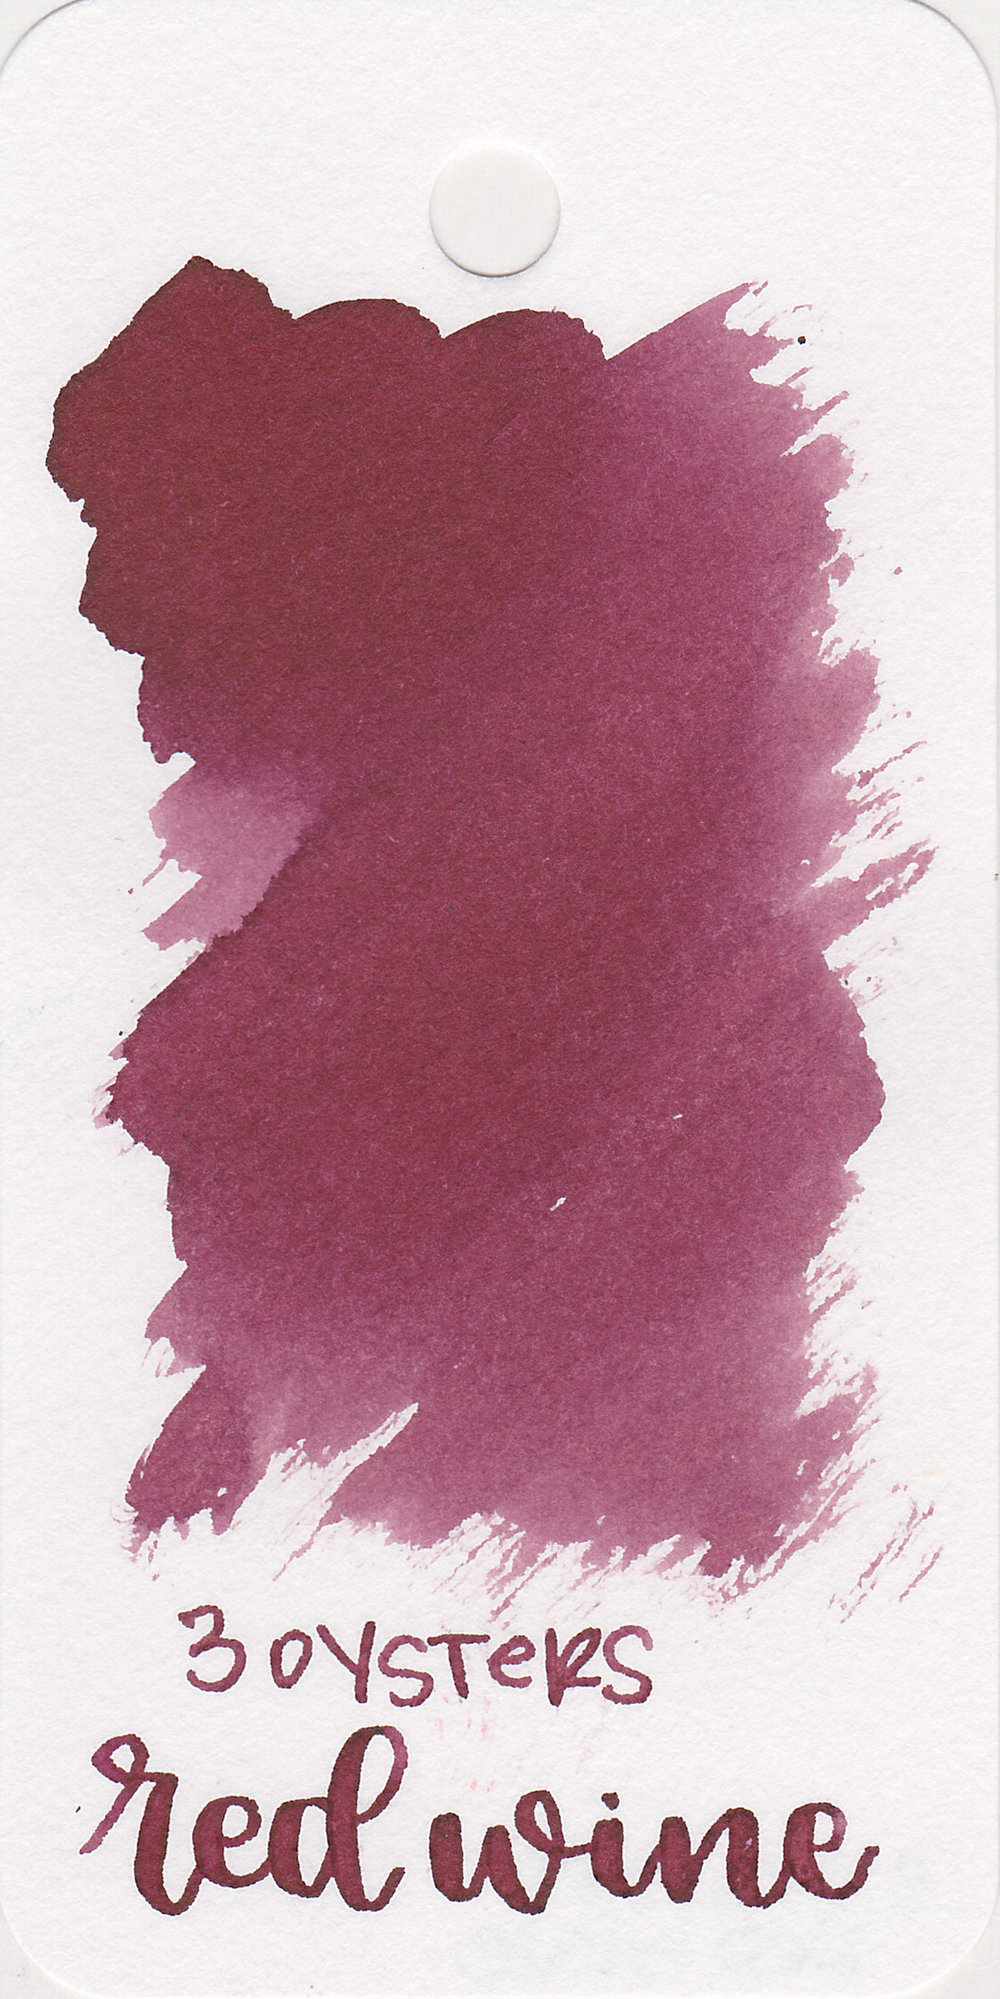 The color: - Red Wine is a dark but rather unsaturated maroonish-burgundy.